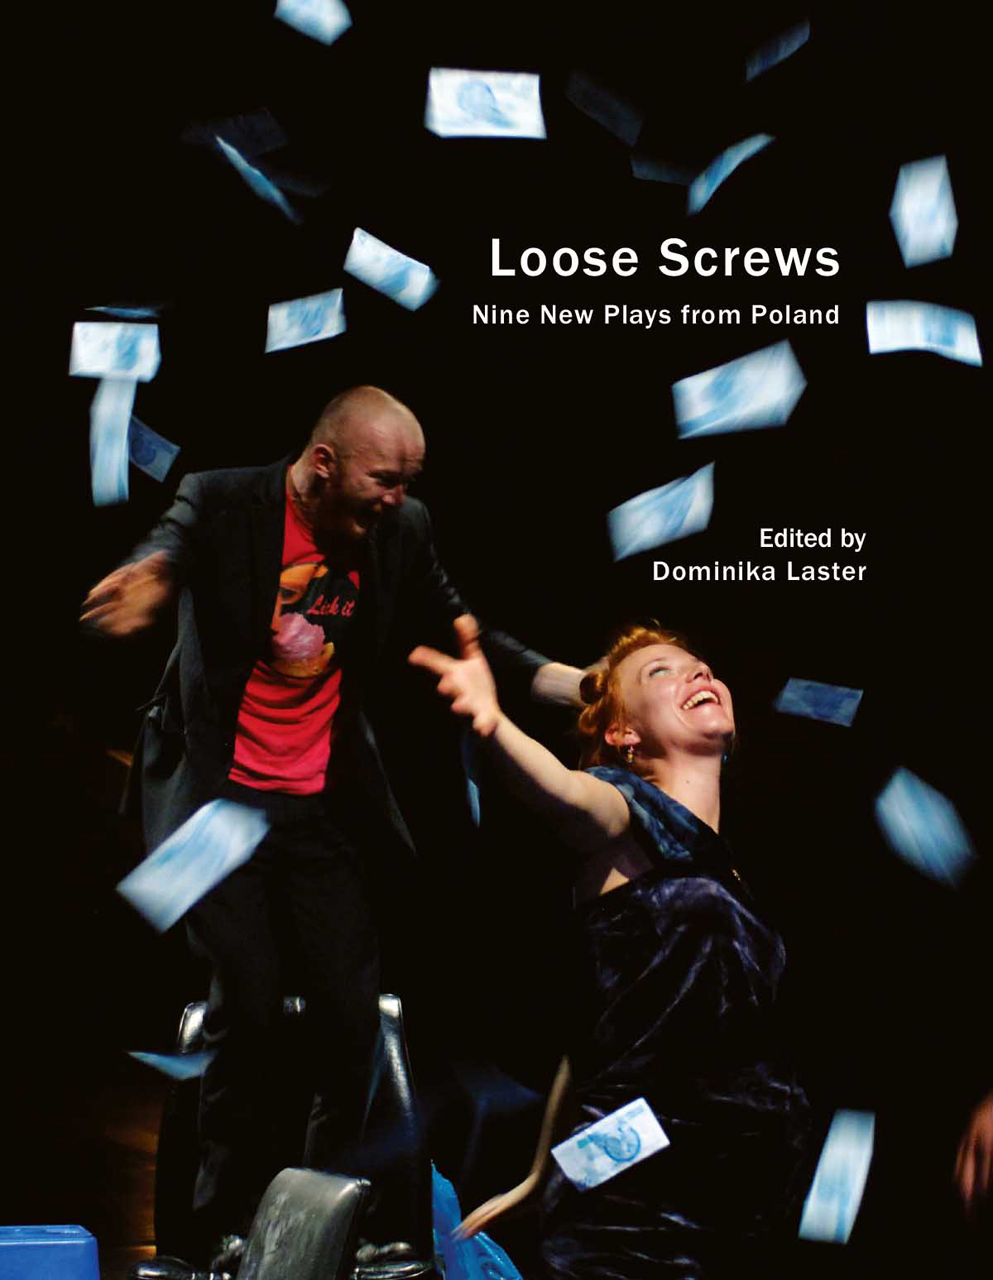 Loose Screws: Nine New Plays from Poland by Dominika Laster |  Seagull Books